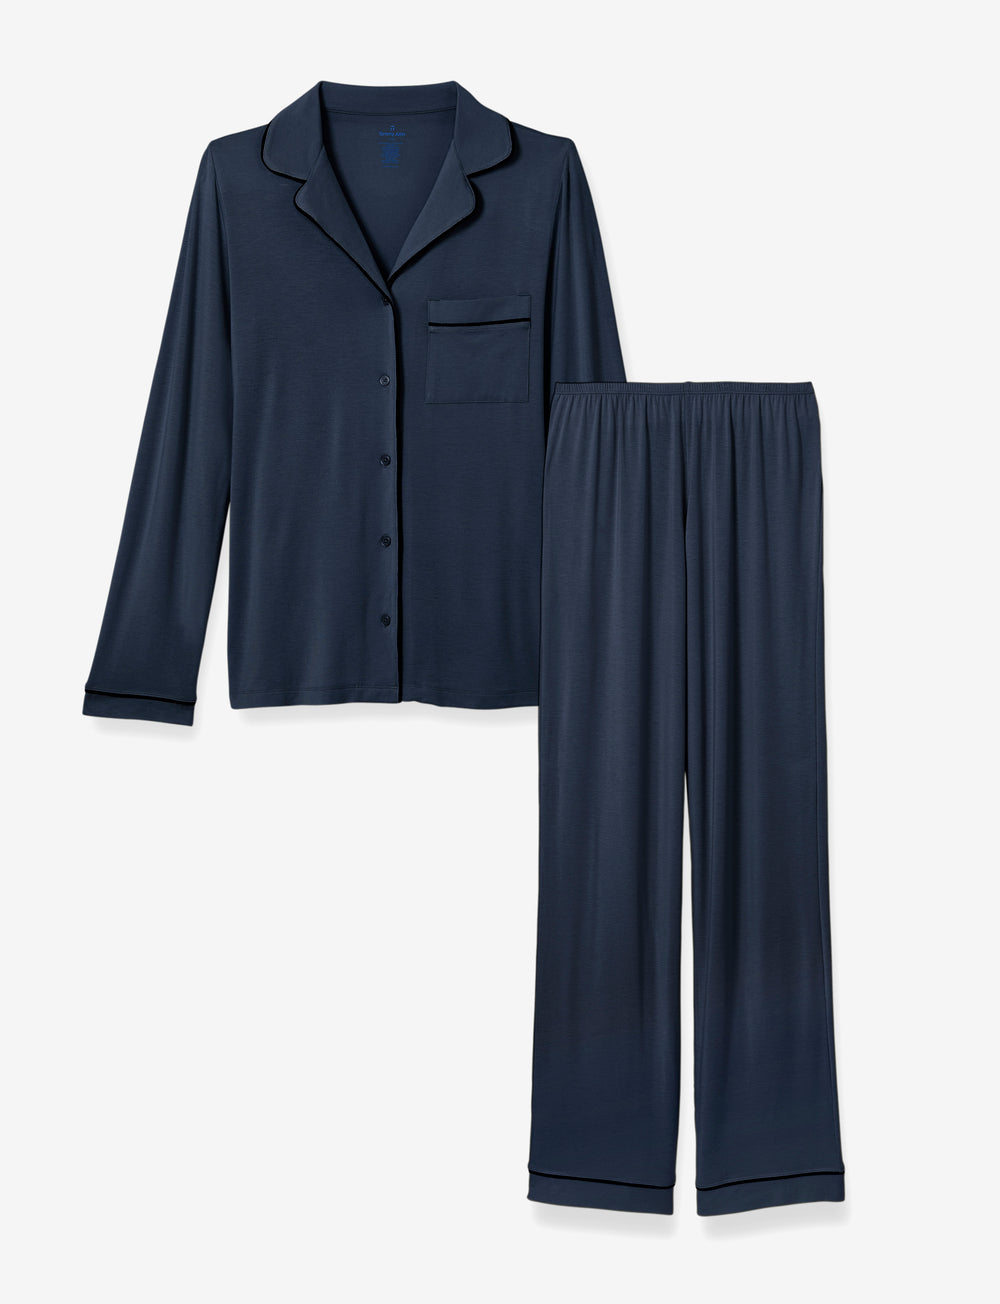 Mother's Day PJ Set Navy Long Sleeve Top & Pant Details Image